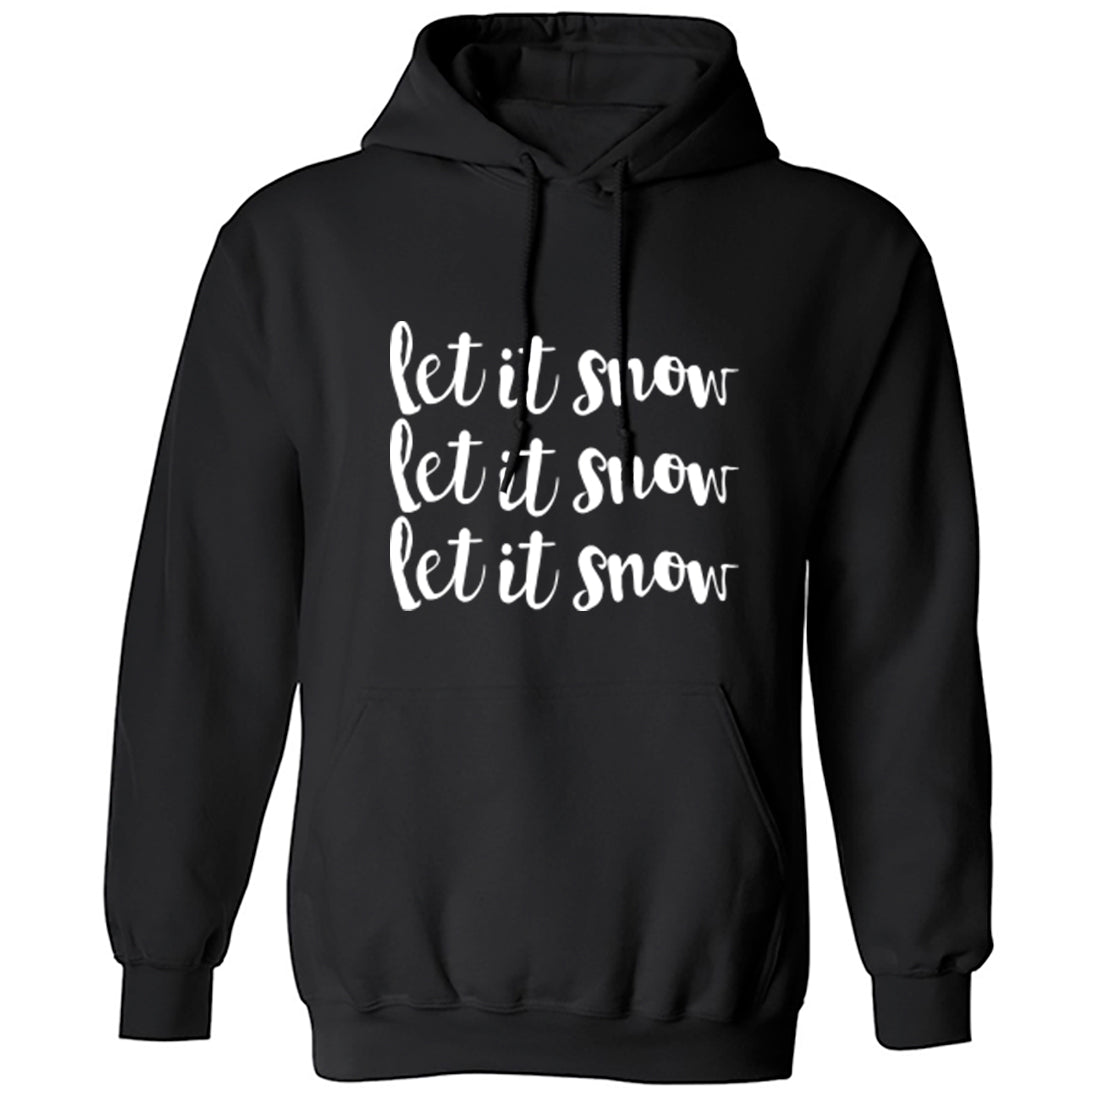 Let It Snow Let It Snow Let It Snow Unisex Hoodie K1349 - Illustrated Identity Ltd.